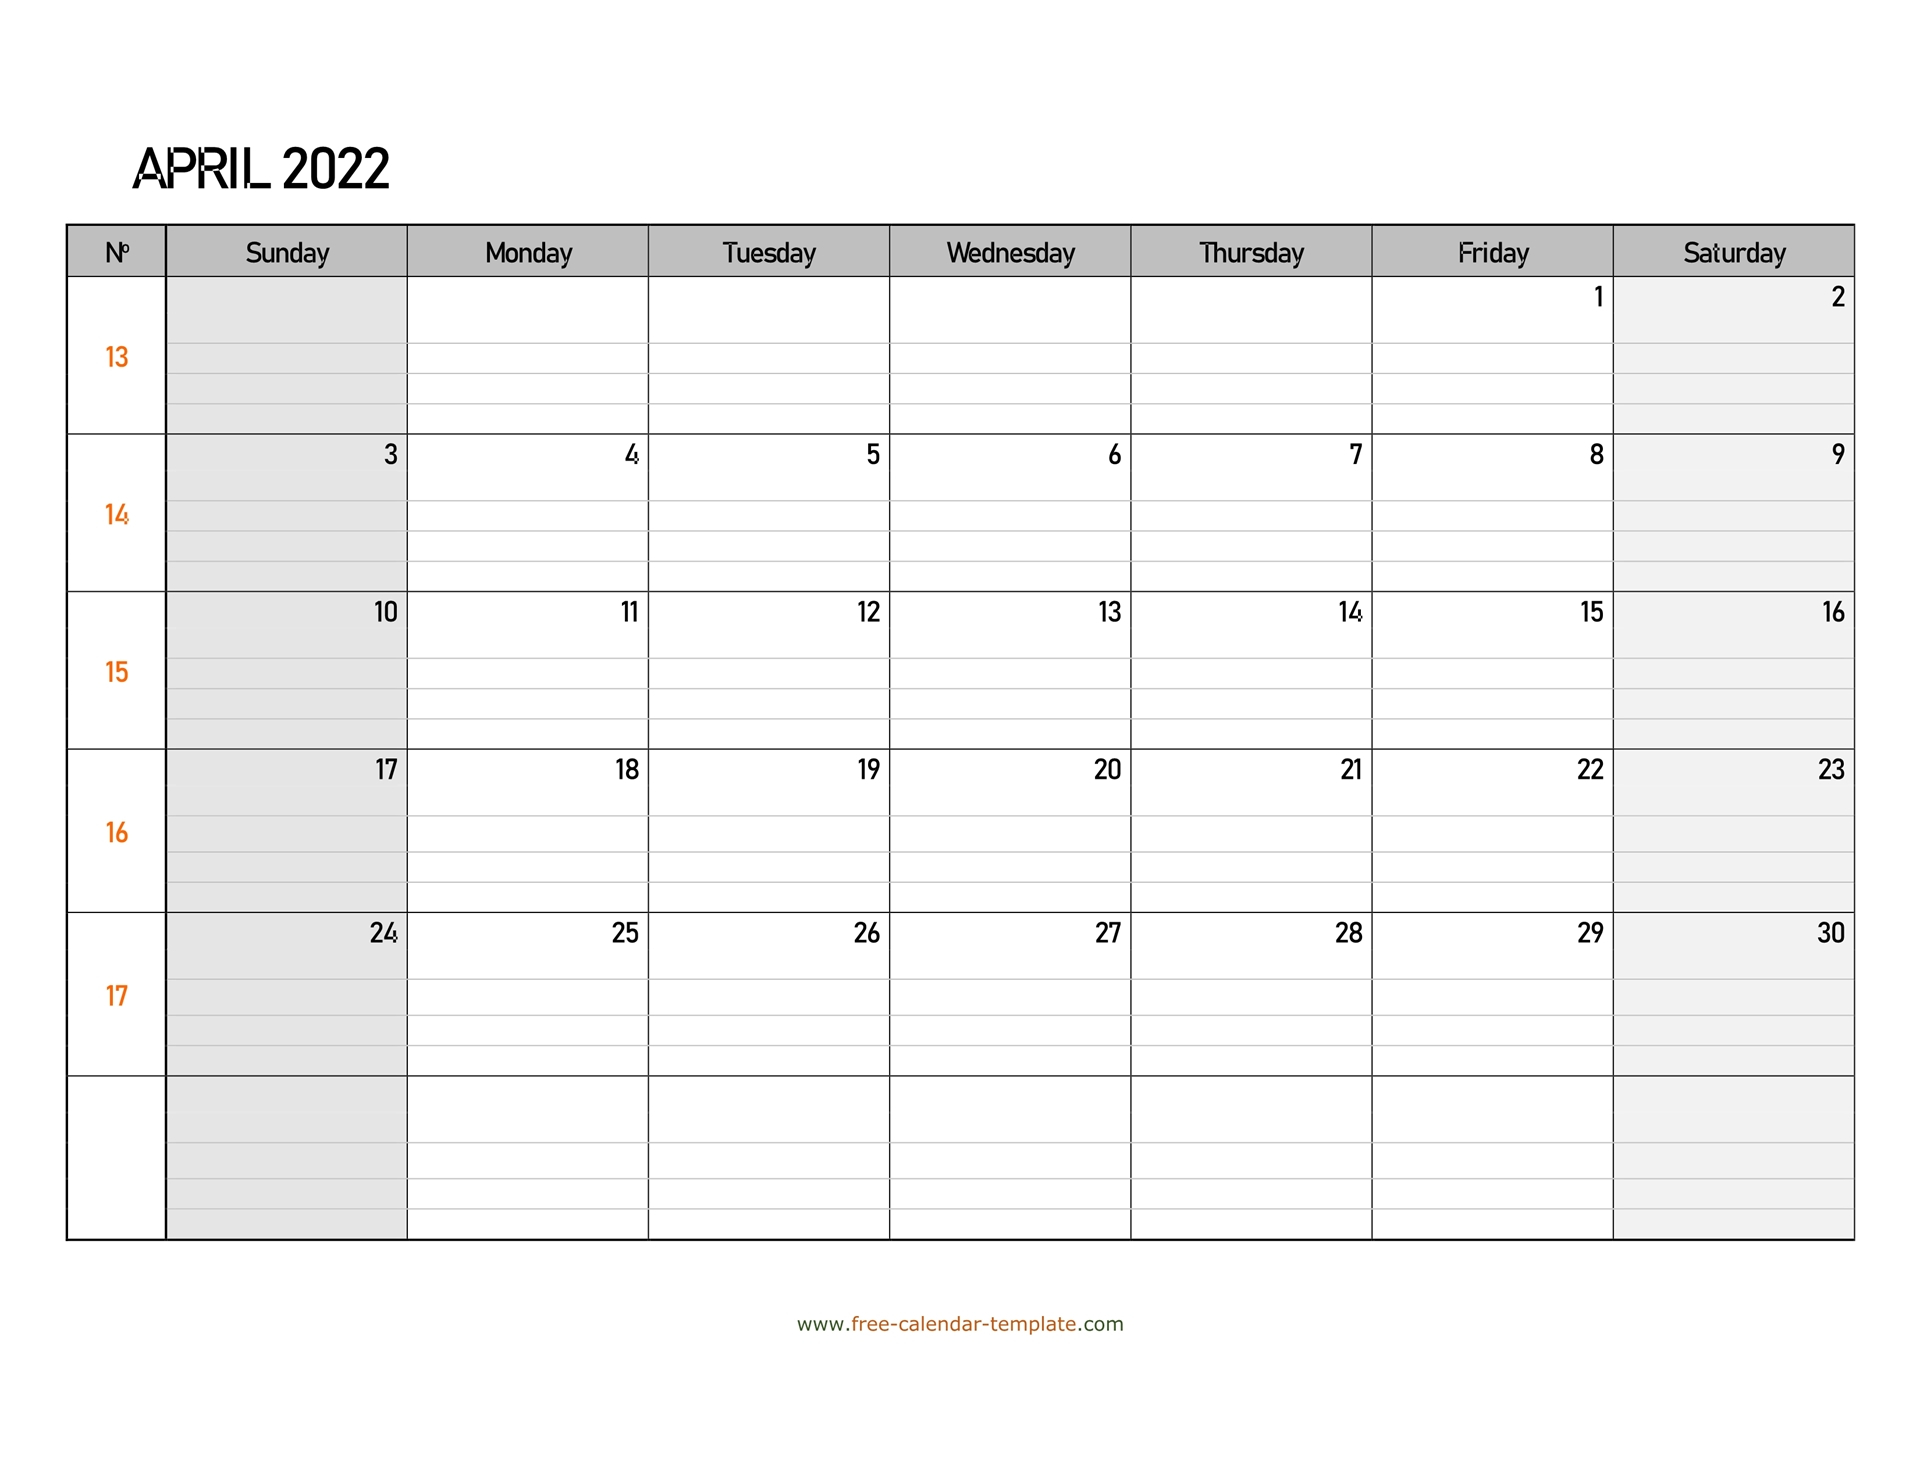 April 2022 Calendar Free Printable With Grid Lines Throughout Blank Calendar April 2022 Printable February